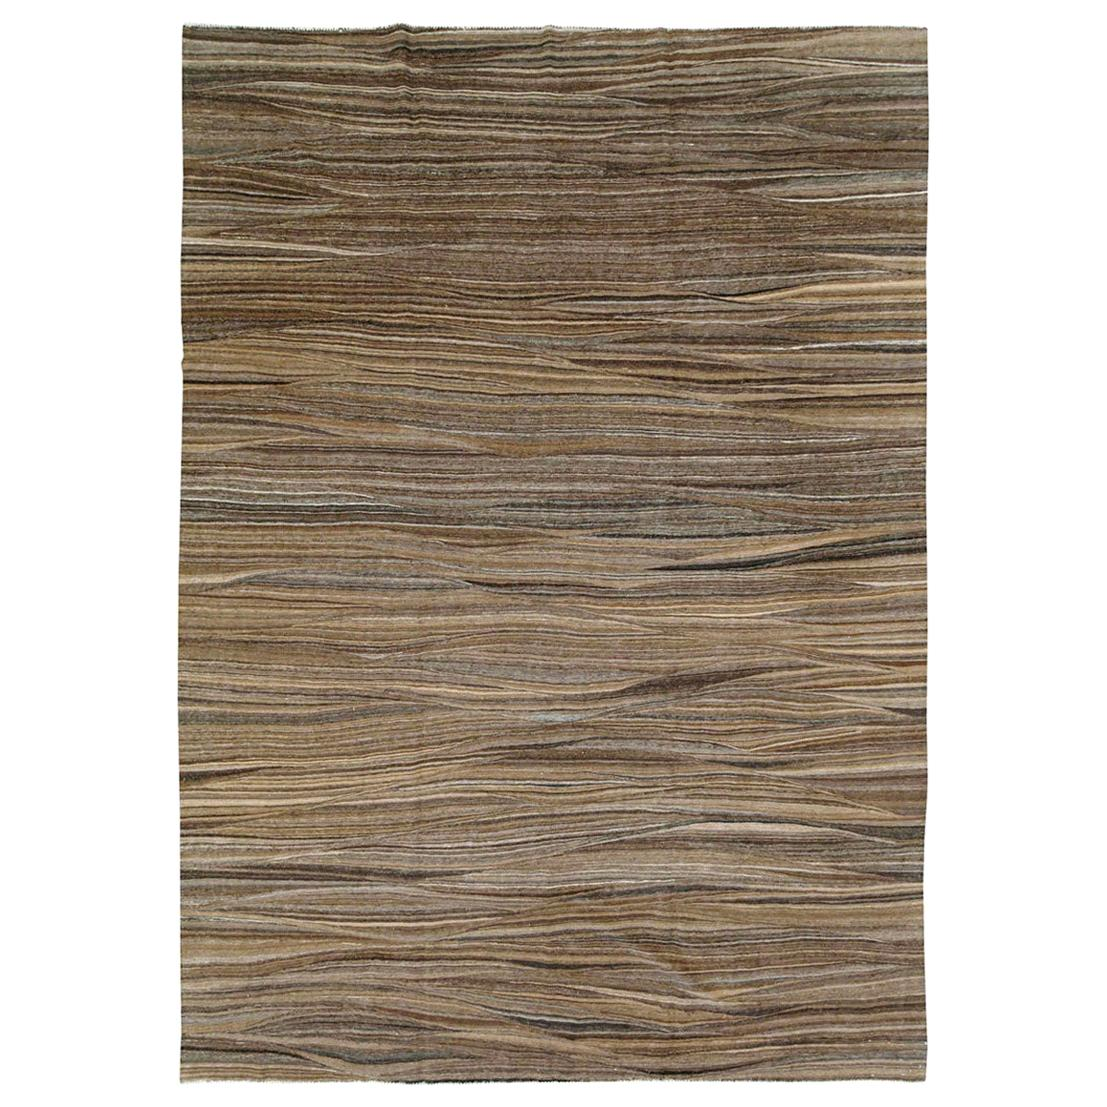 Contemporary Handmade Swedish Inspired Brown Room Size Flat-Weave Rug